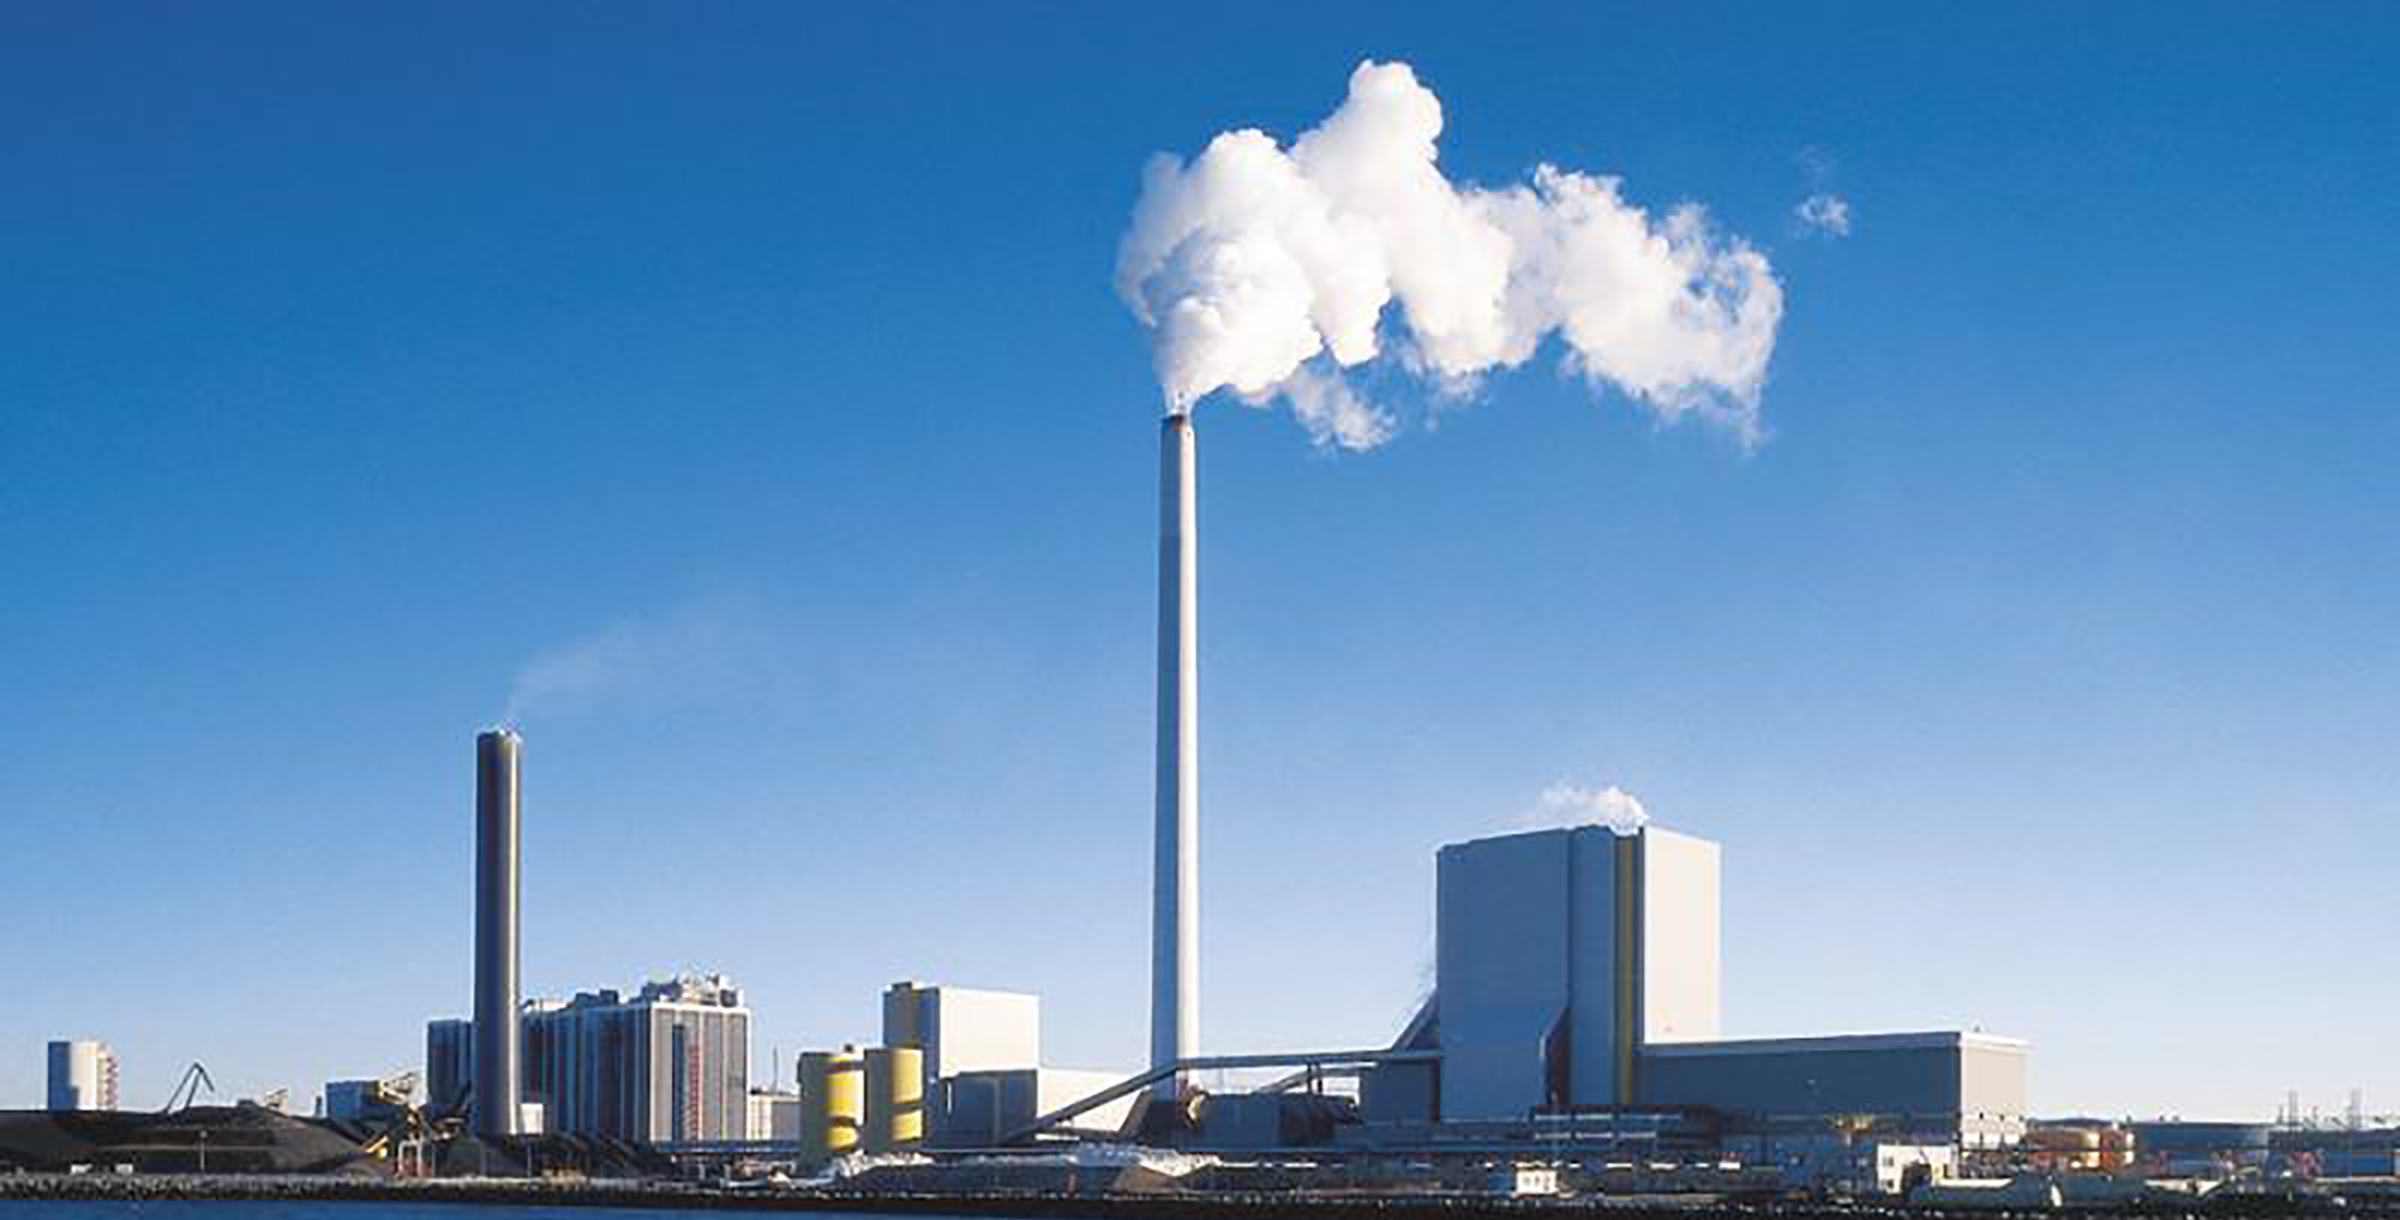 Scanvaegt Systems | Turnkey solutions for incineration plants